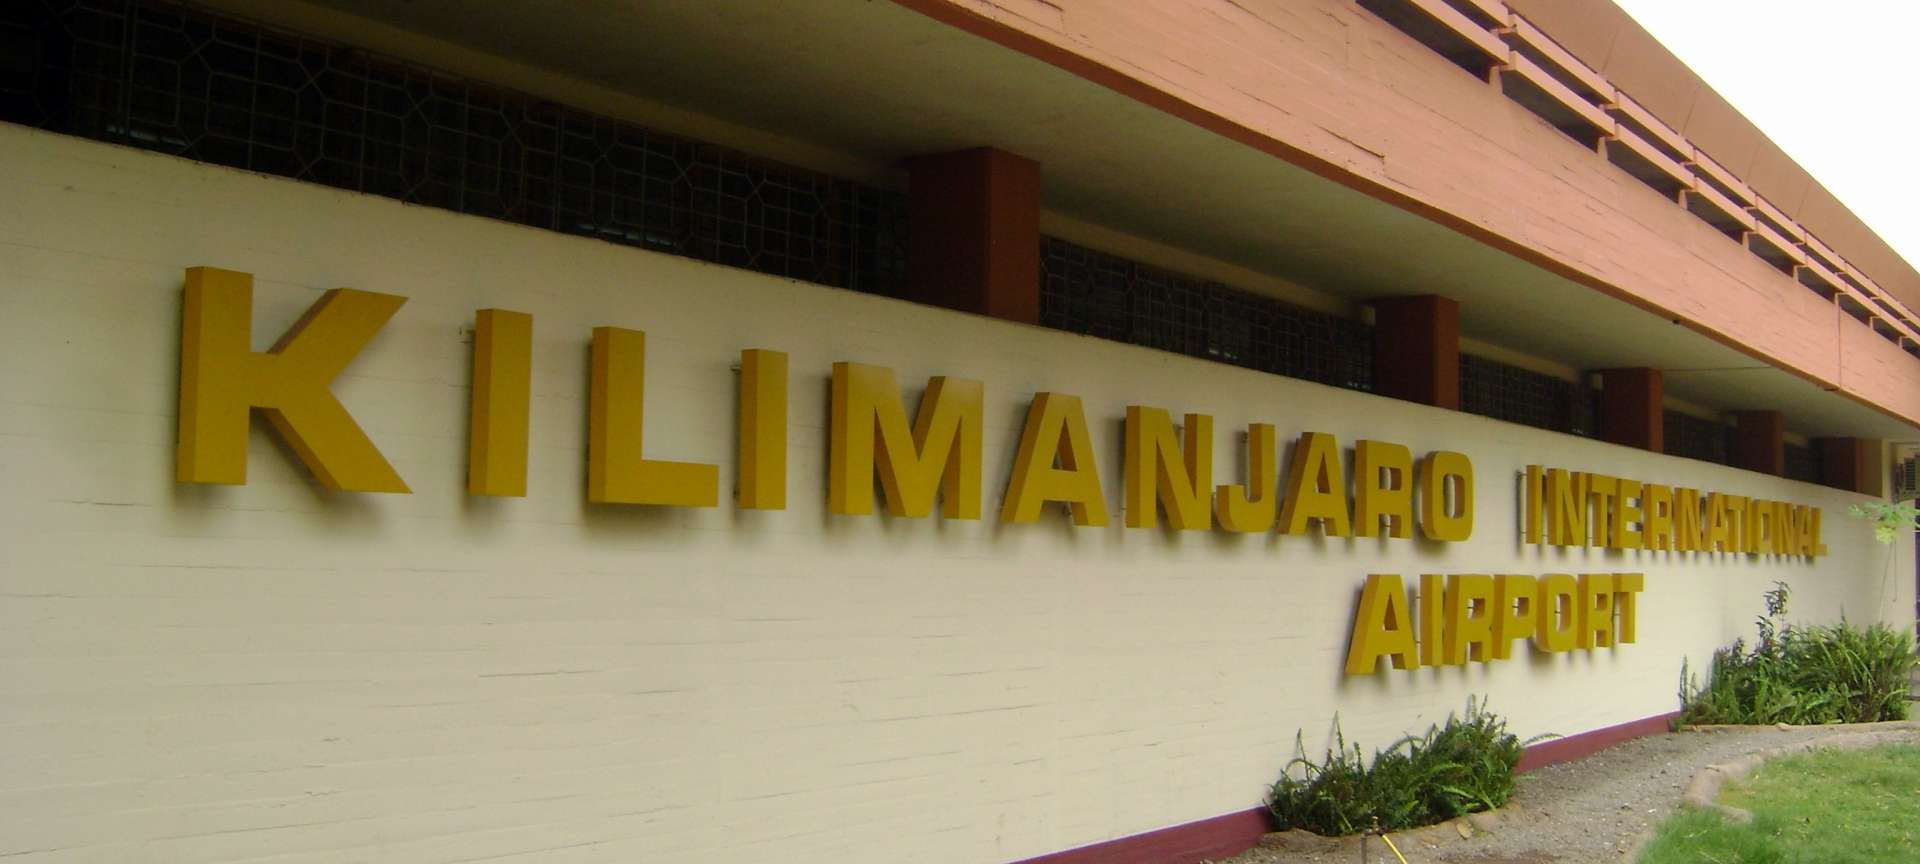 Kilimanjaro Airport - Africa Wildlife Safaris